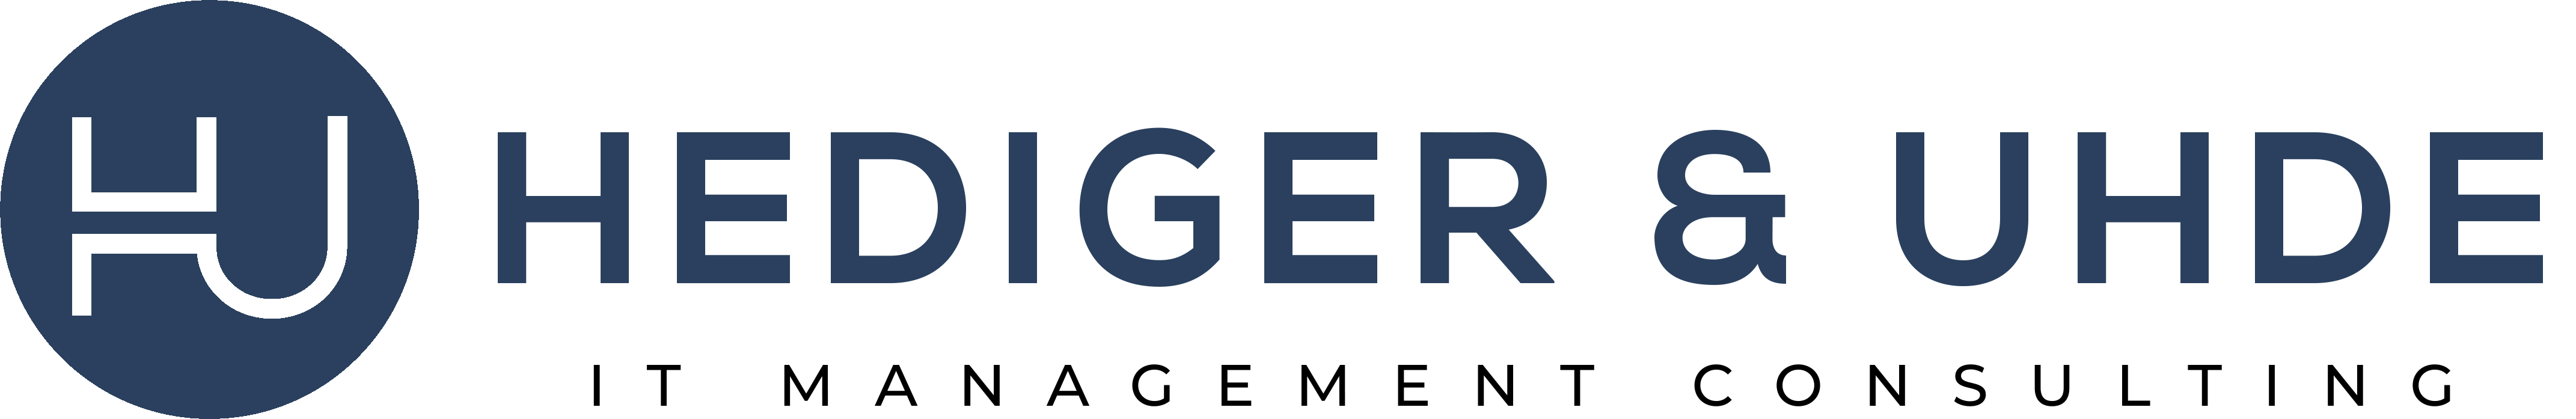 Hediger & Uhde - IT Management Consulting